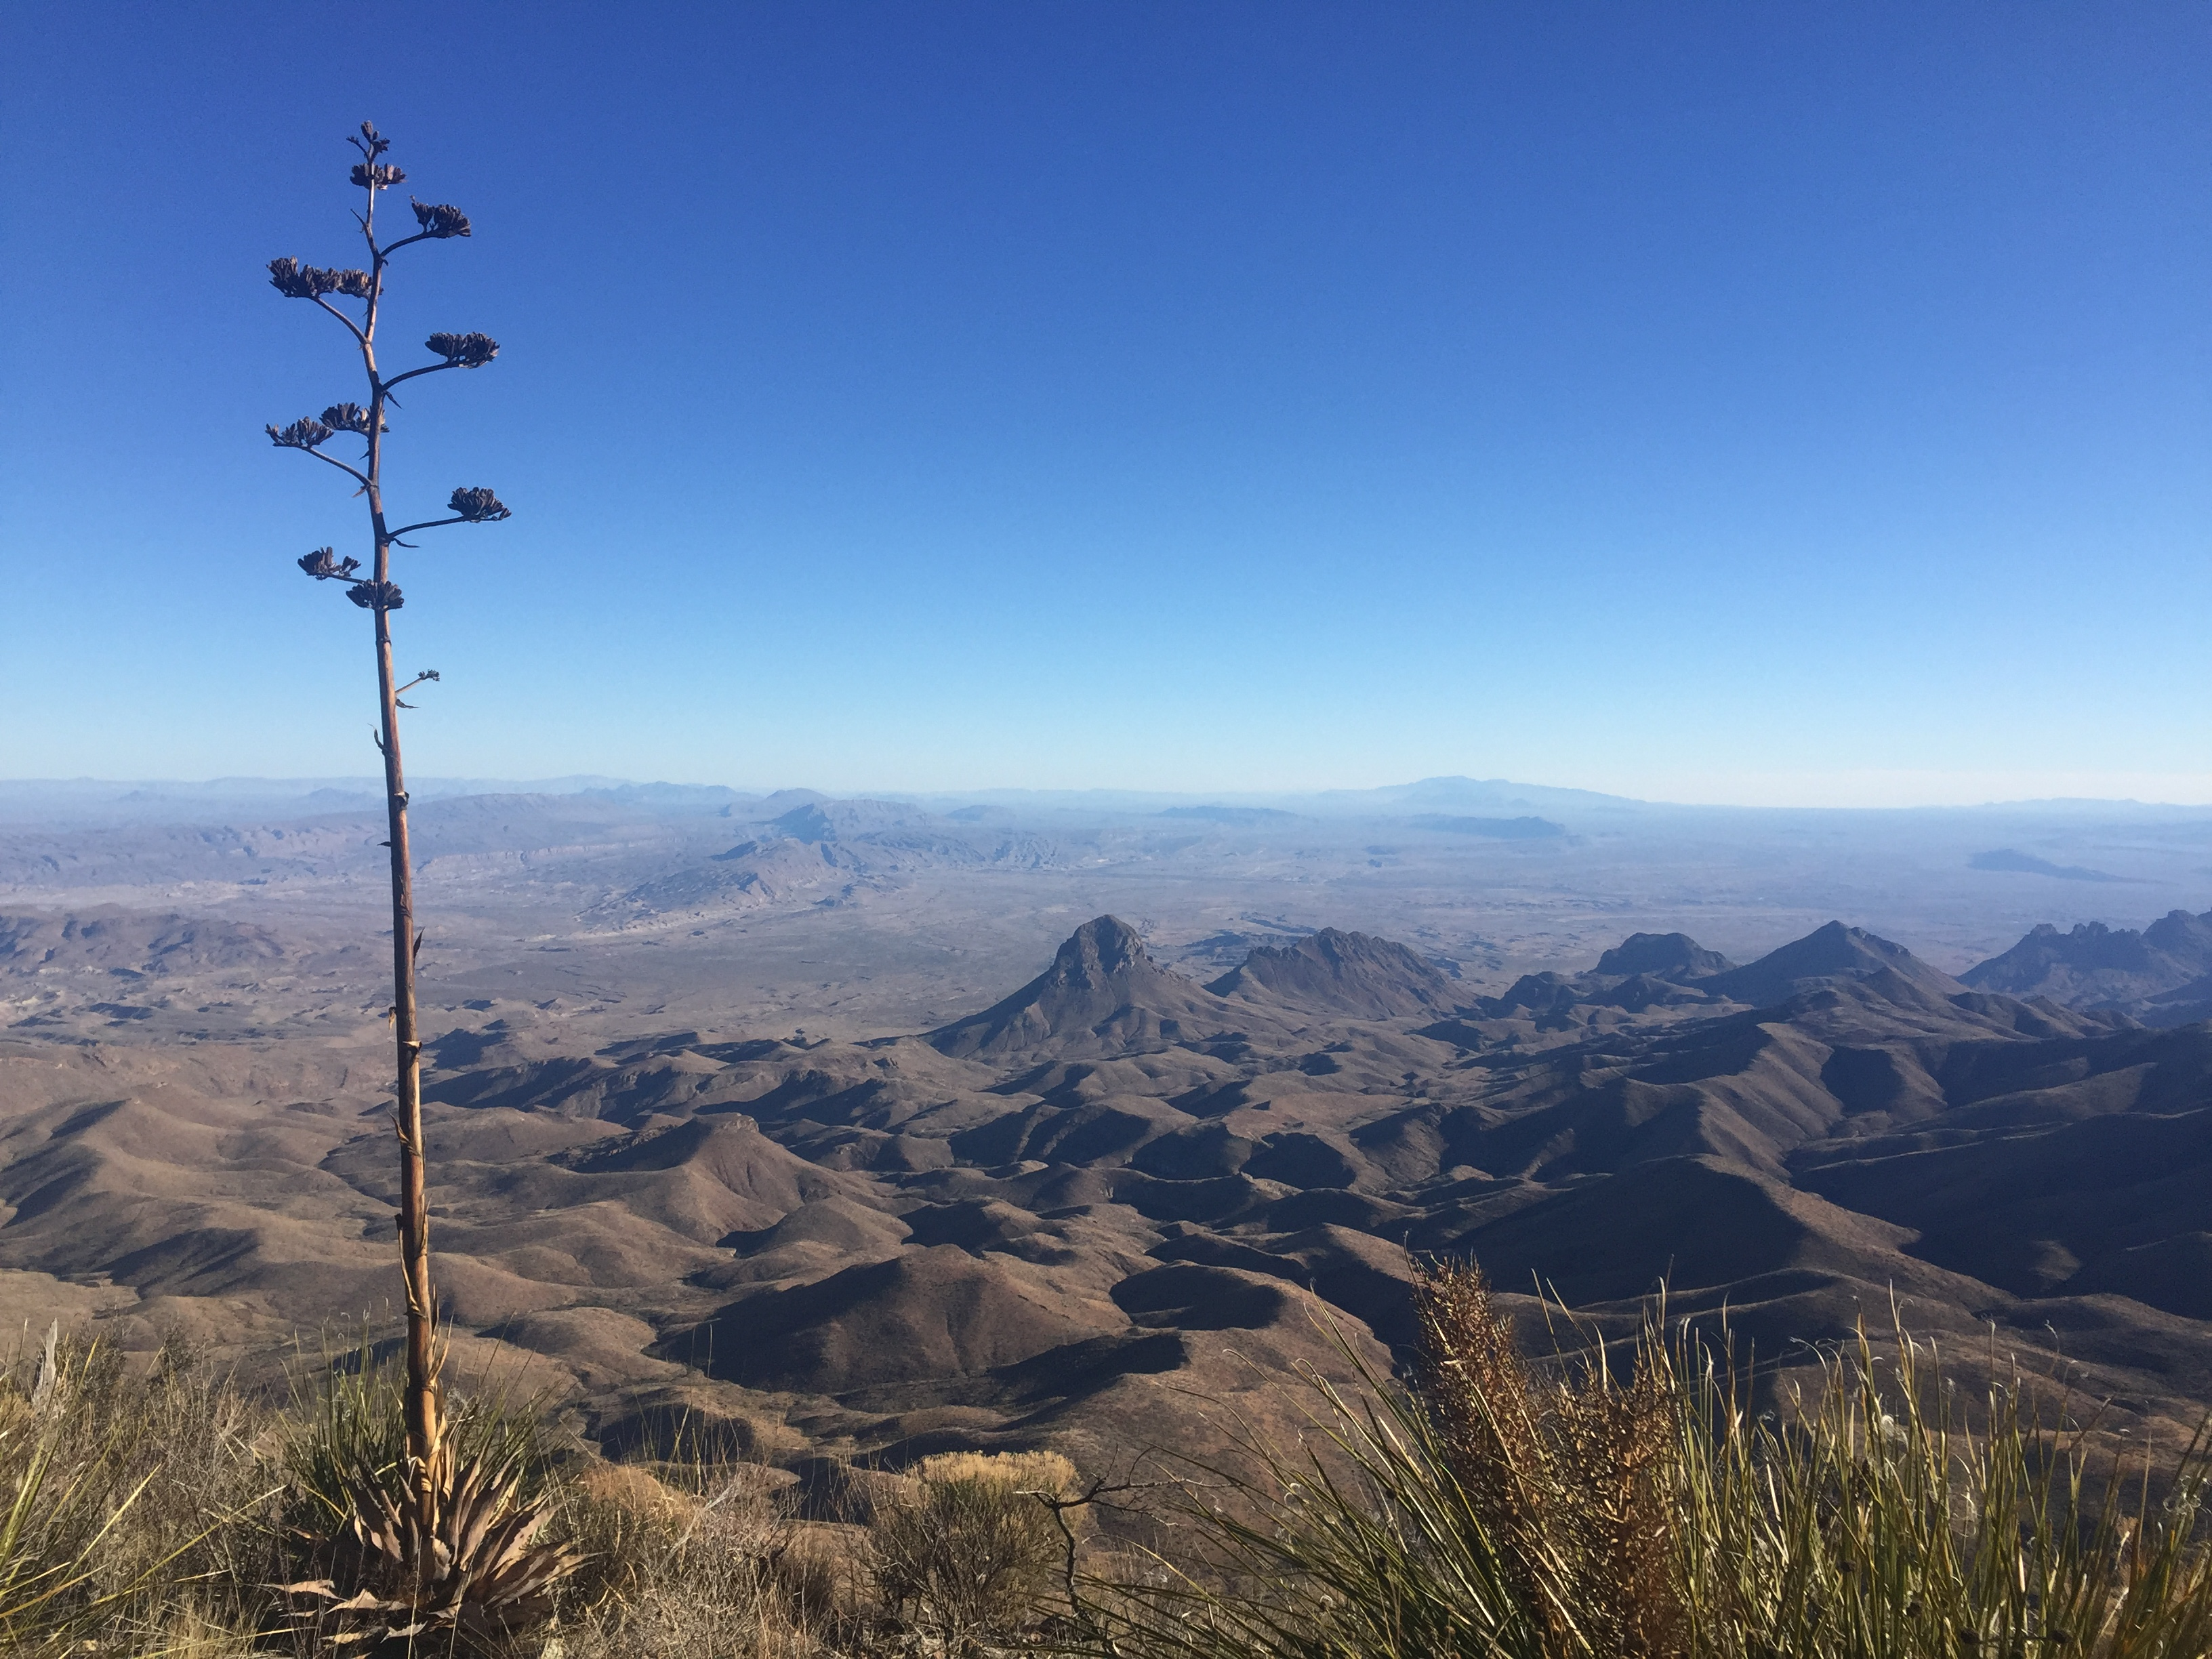 VIDEO: Big Bend National Park